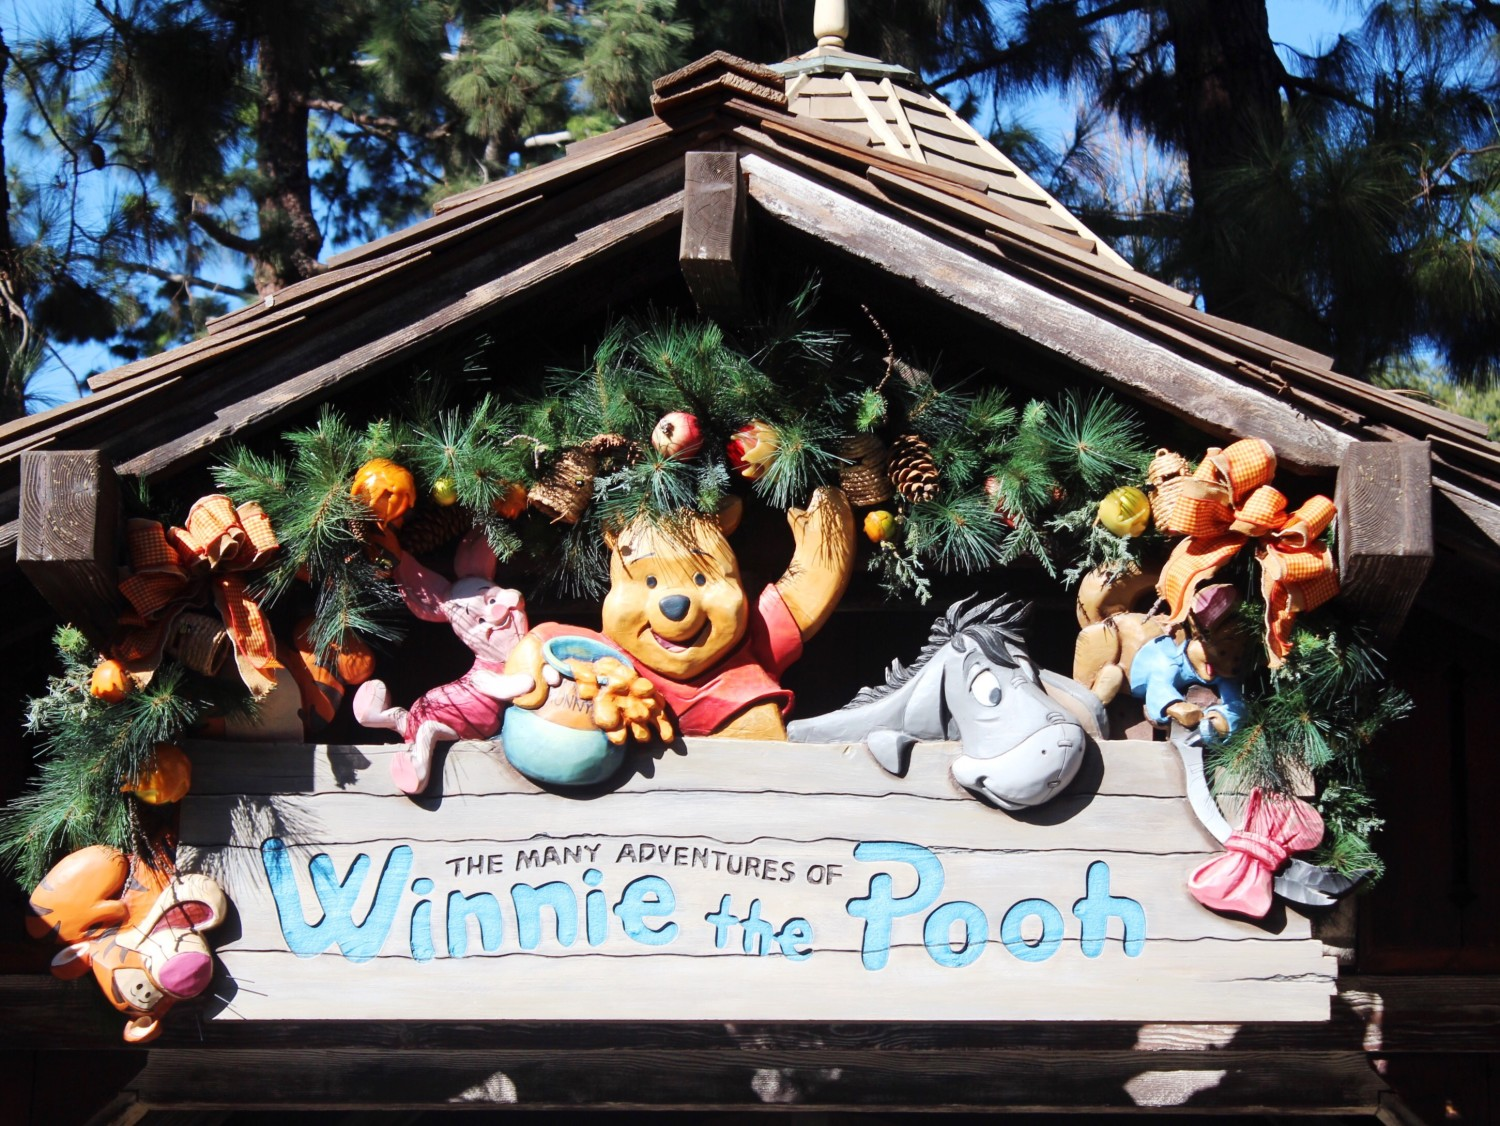 Disneyland The Many Adventures of Winnie The Pooh